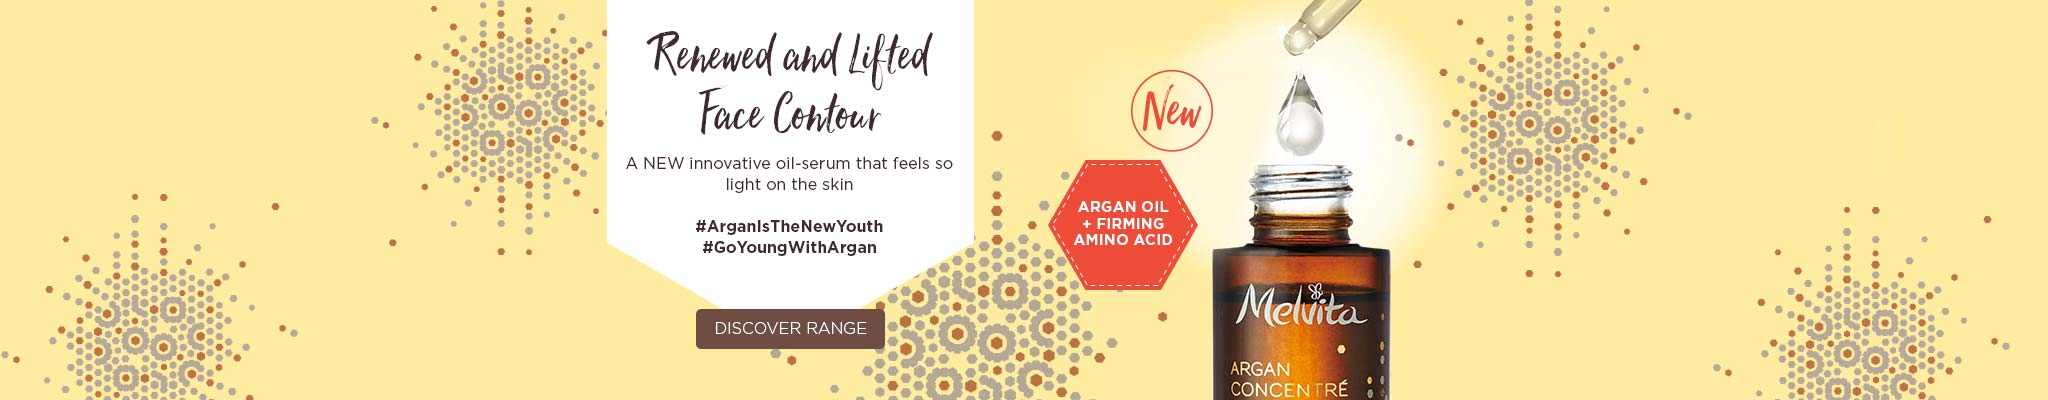 NEW Argan Concentrate Pur Youthful oil-serum